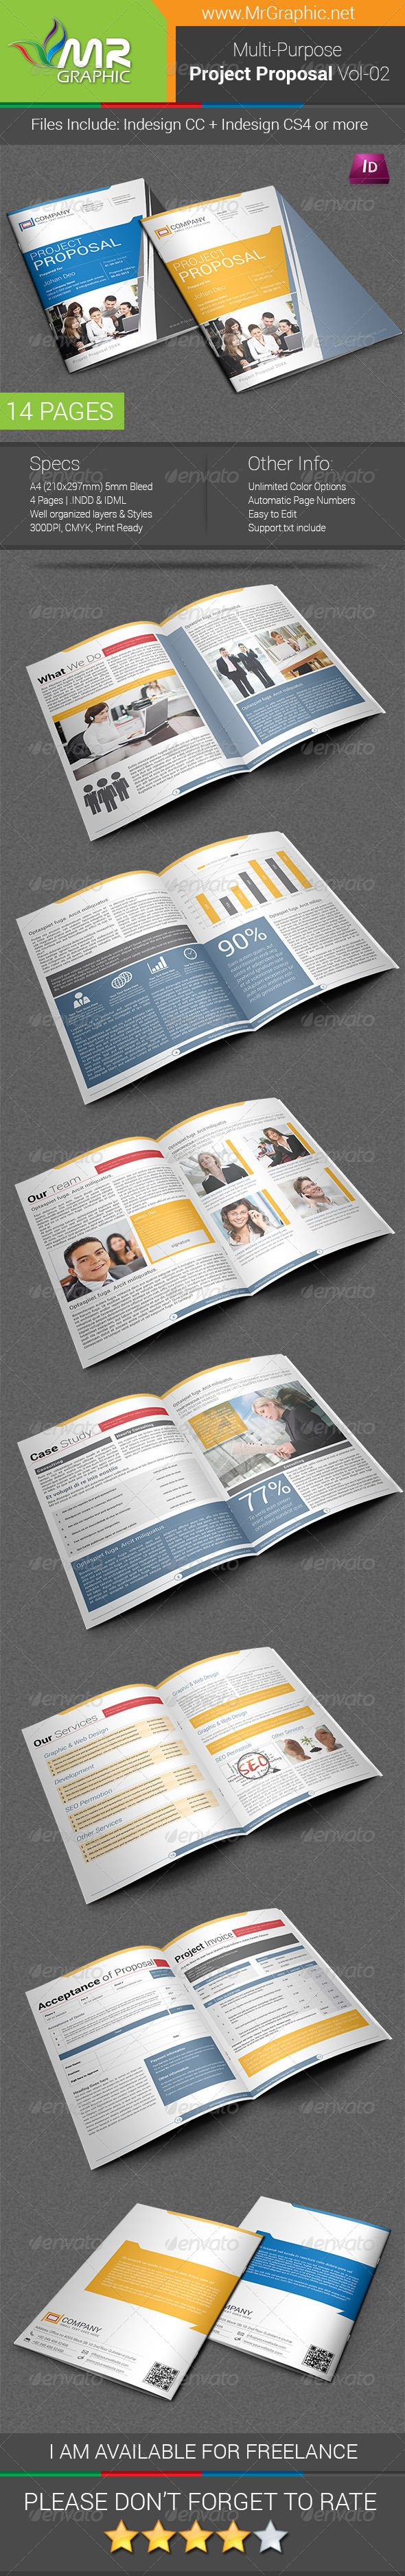 Project Proposal Template Vol 02 91 best Print